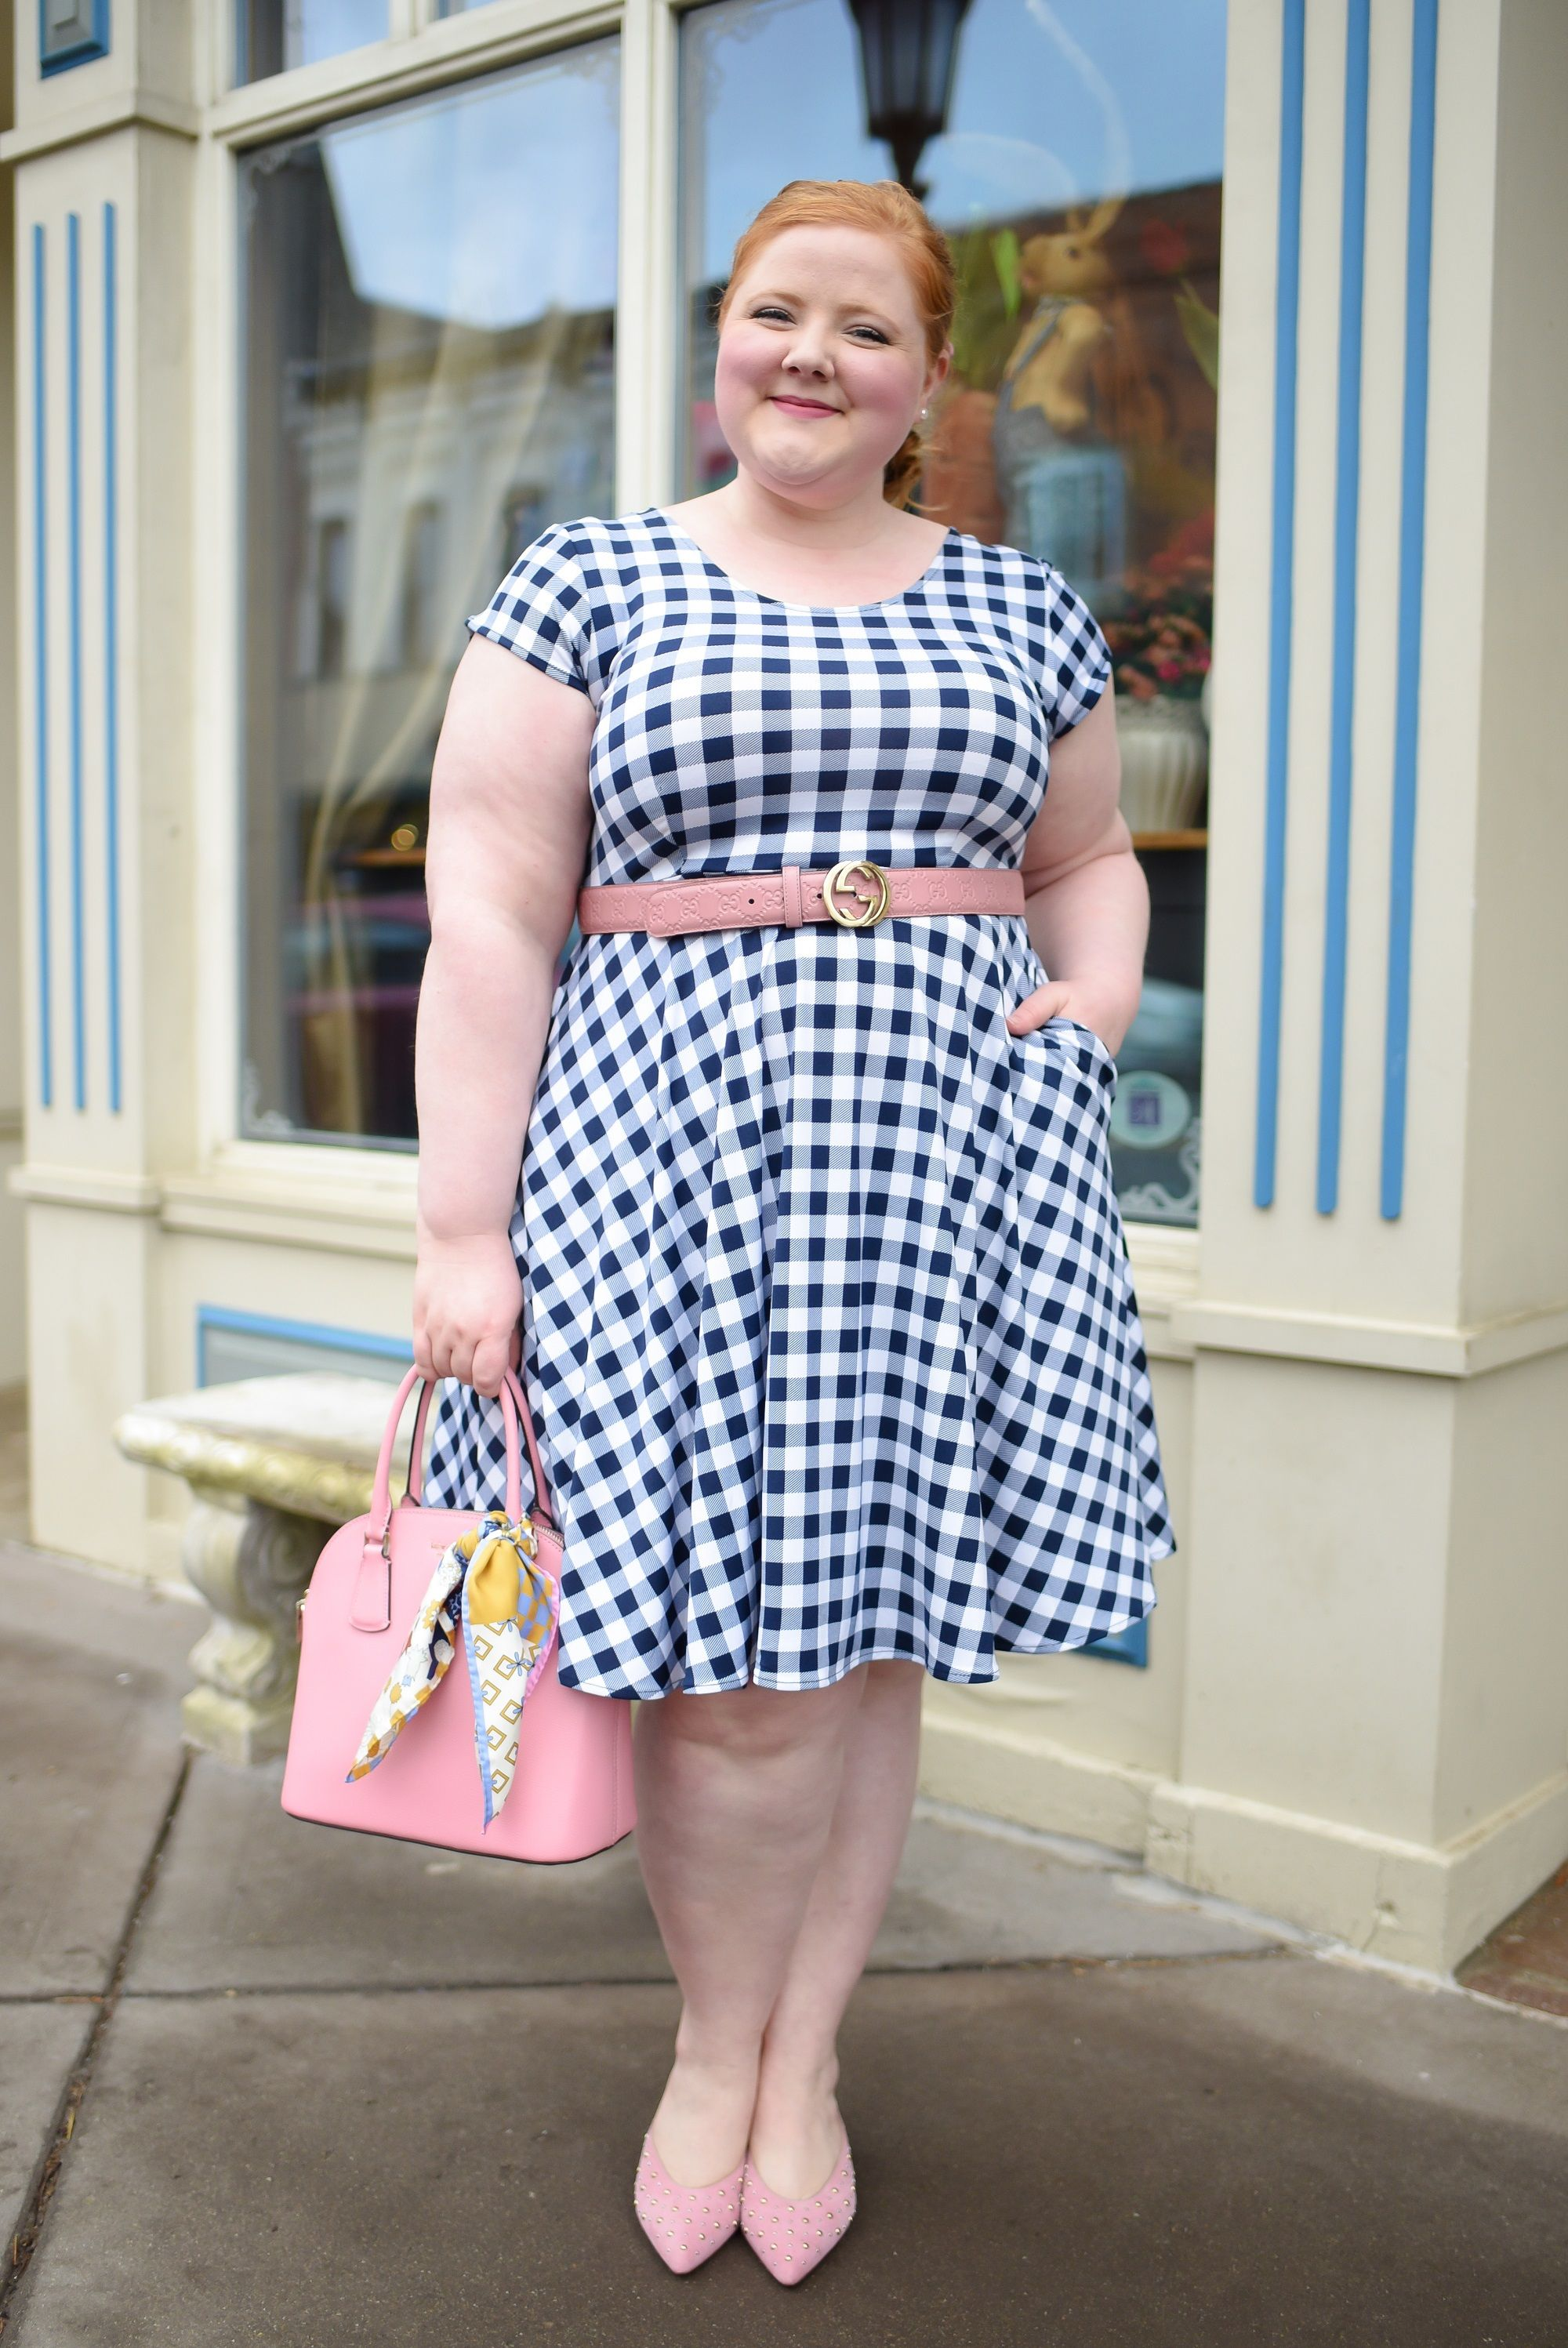 3 Everyday Dresses for Spring and Summer from Karina Dresses (sizes xs-3X): the Joan in Navy Dot, Megan in Orange Vintage Floral, and Naomi in Navy Gingham. 1